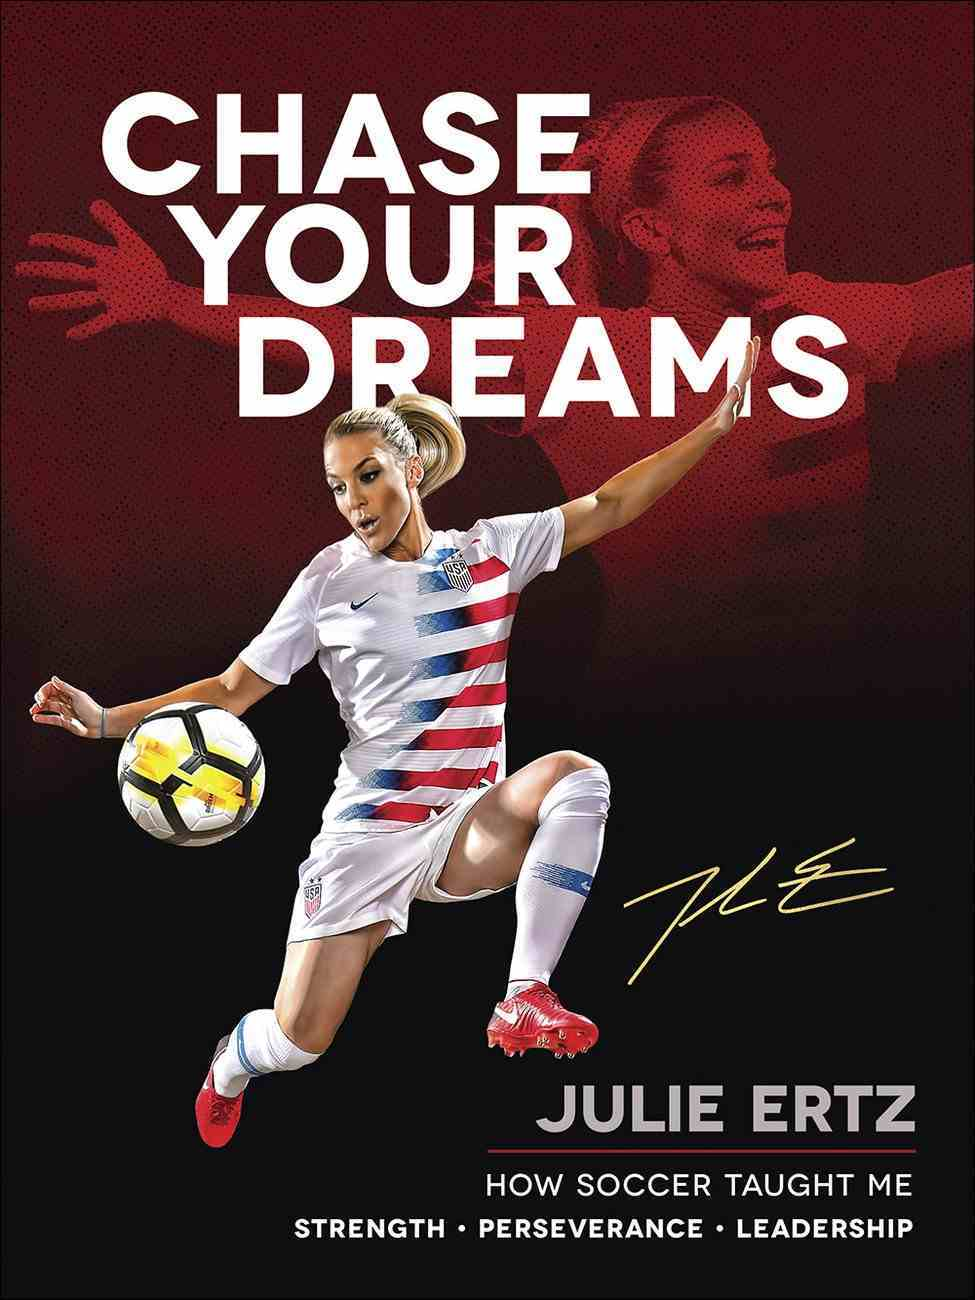 Chase Your Dreams: How Soccer Taught Me Strength, Perseverance, and Leadership Hardback